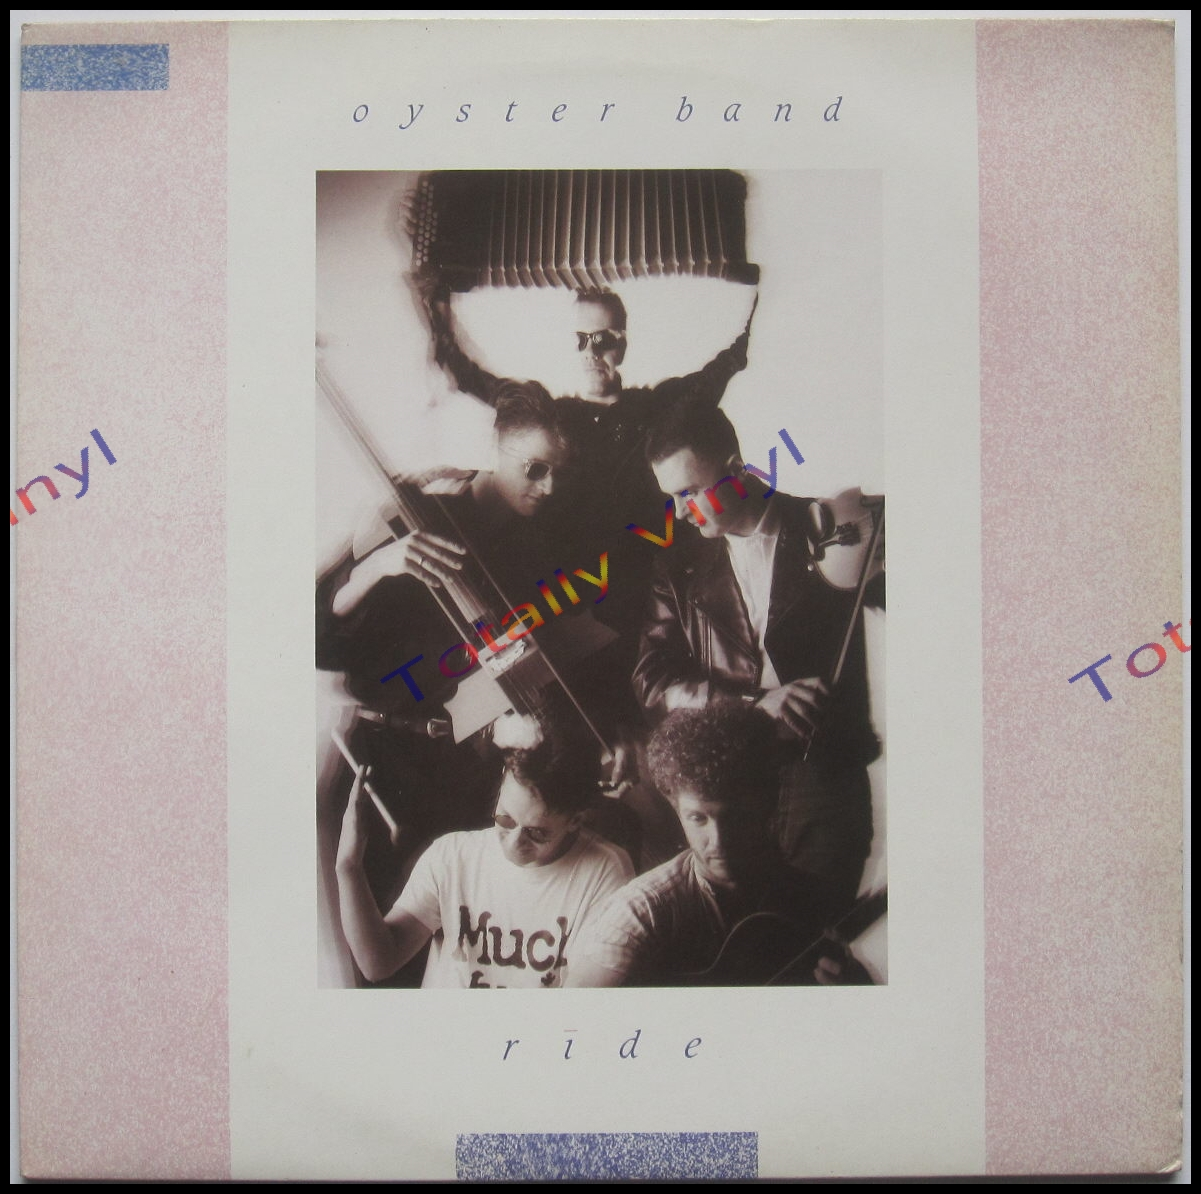 Totally Vinyl Records Oyster Band The Ride Lp